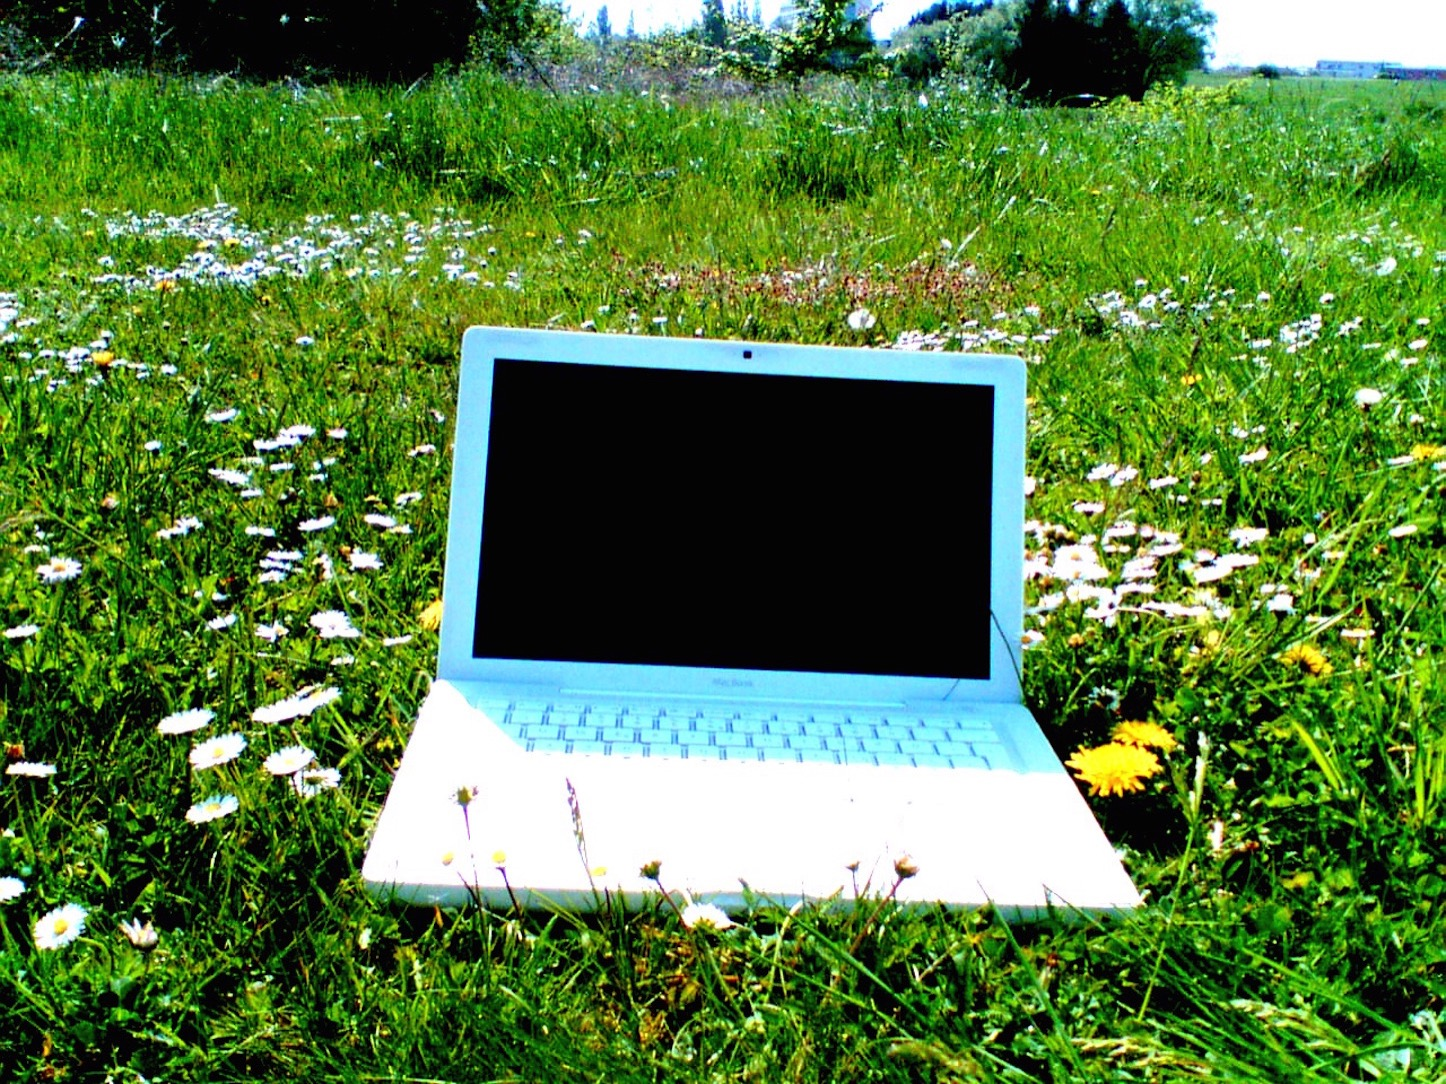 Macbook and flowers